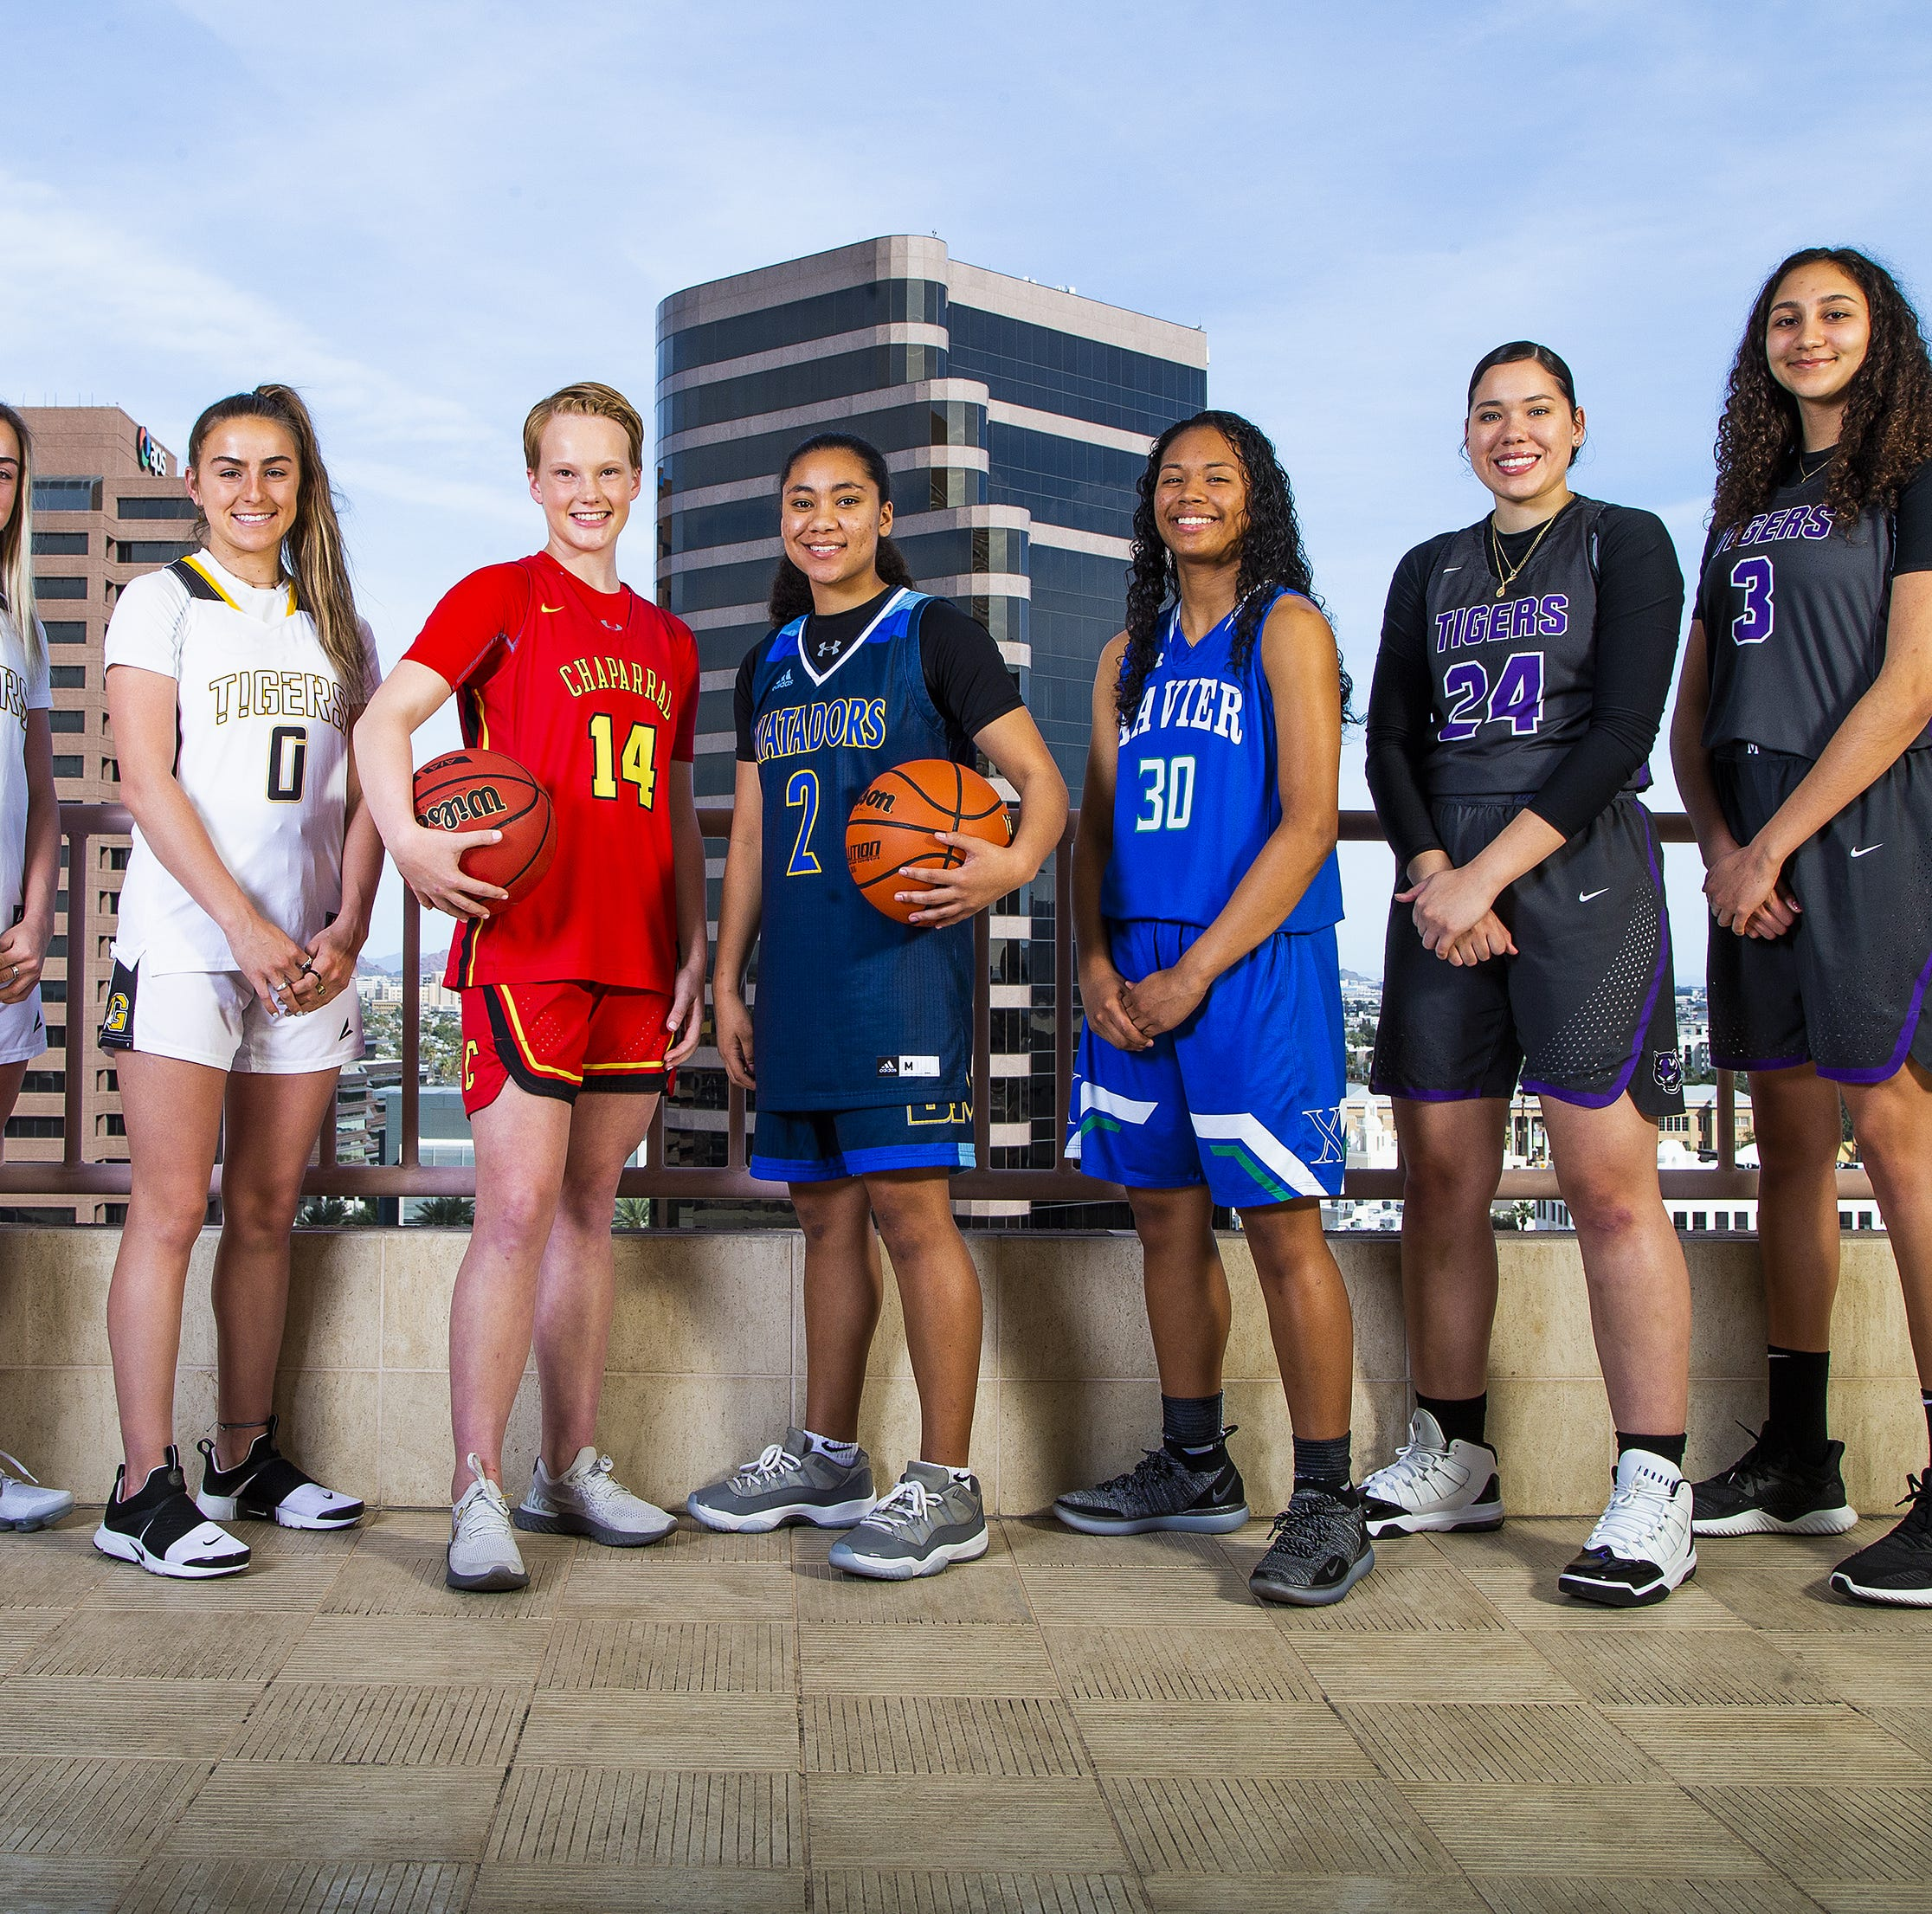 Arizona High School Girls Basketball Player of the Year finalists, All-Arizona team